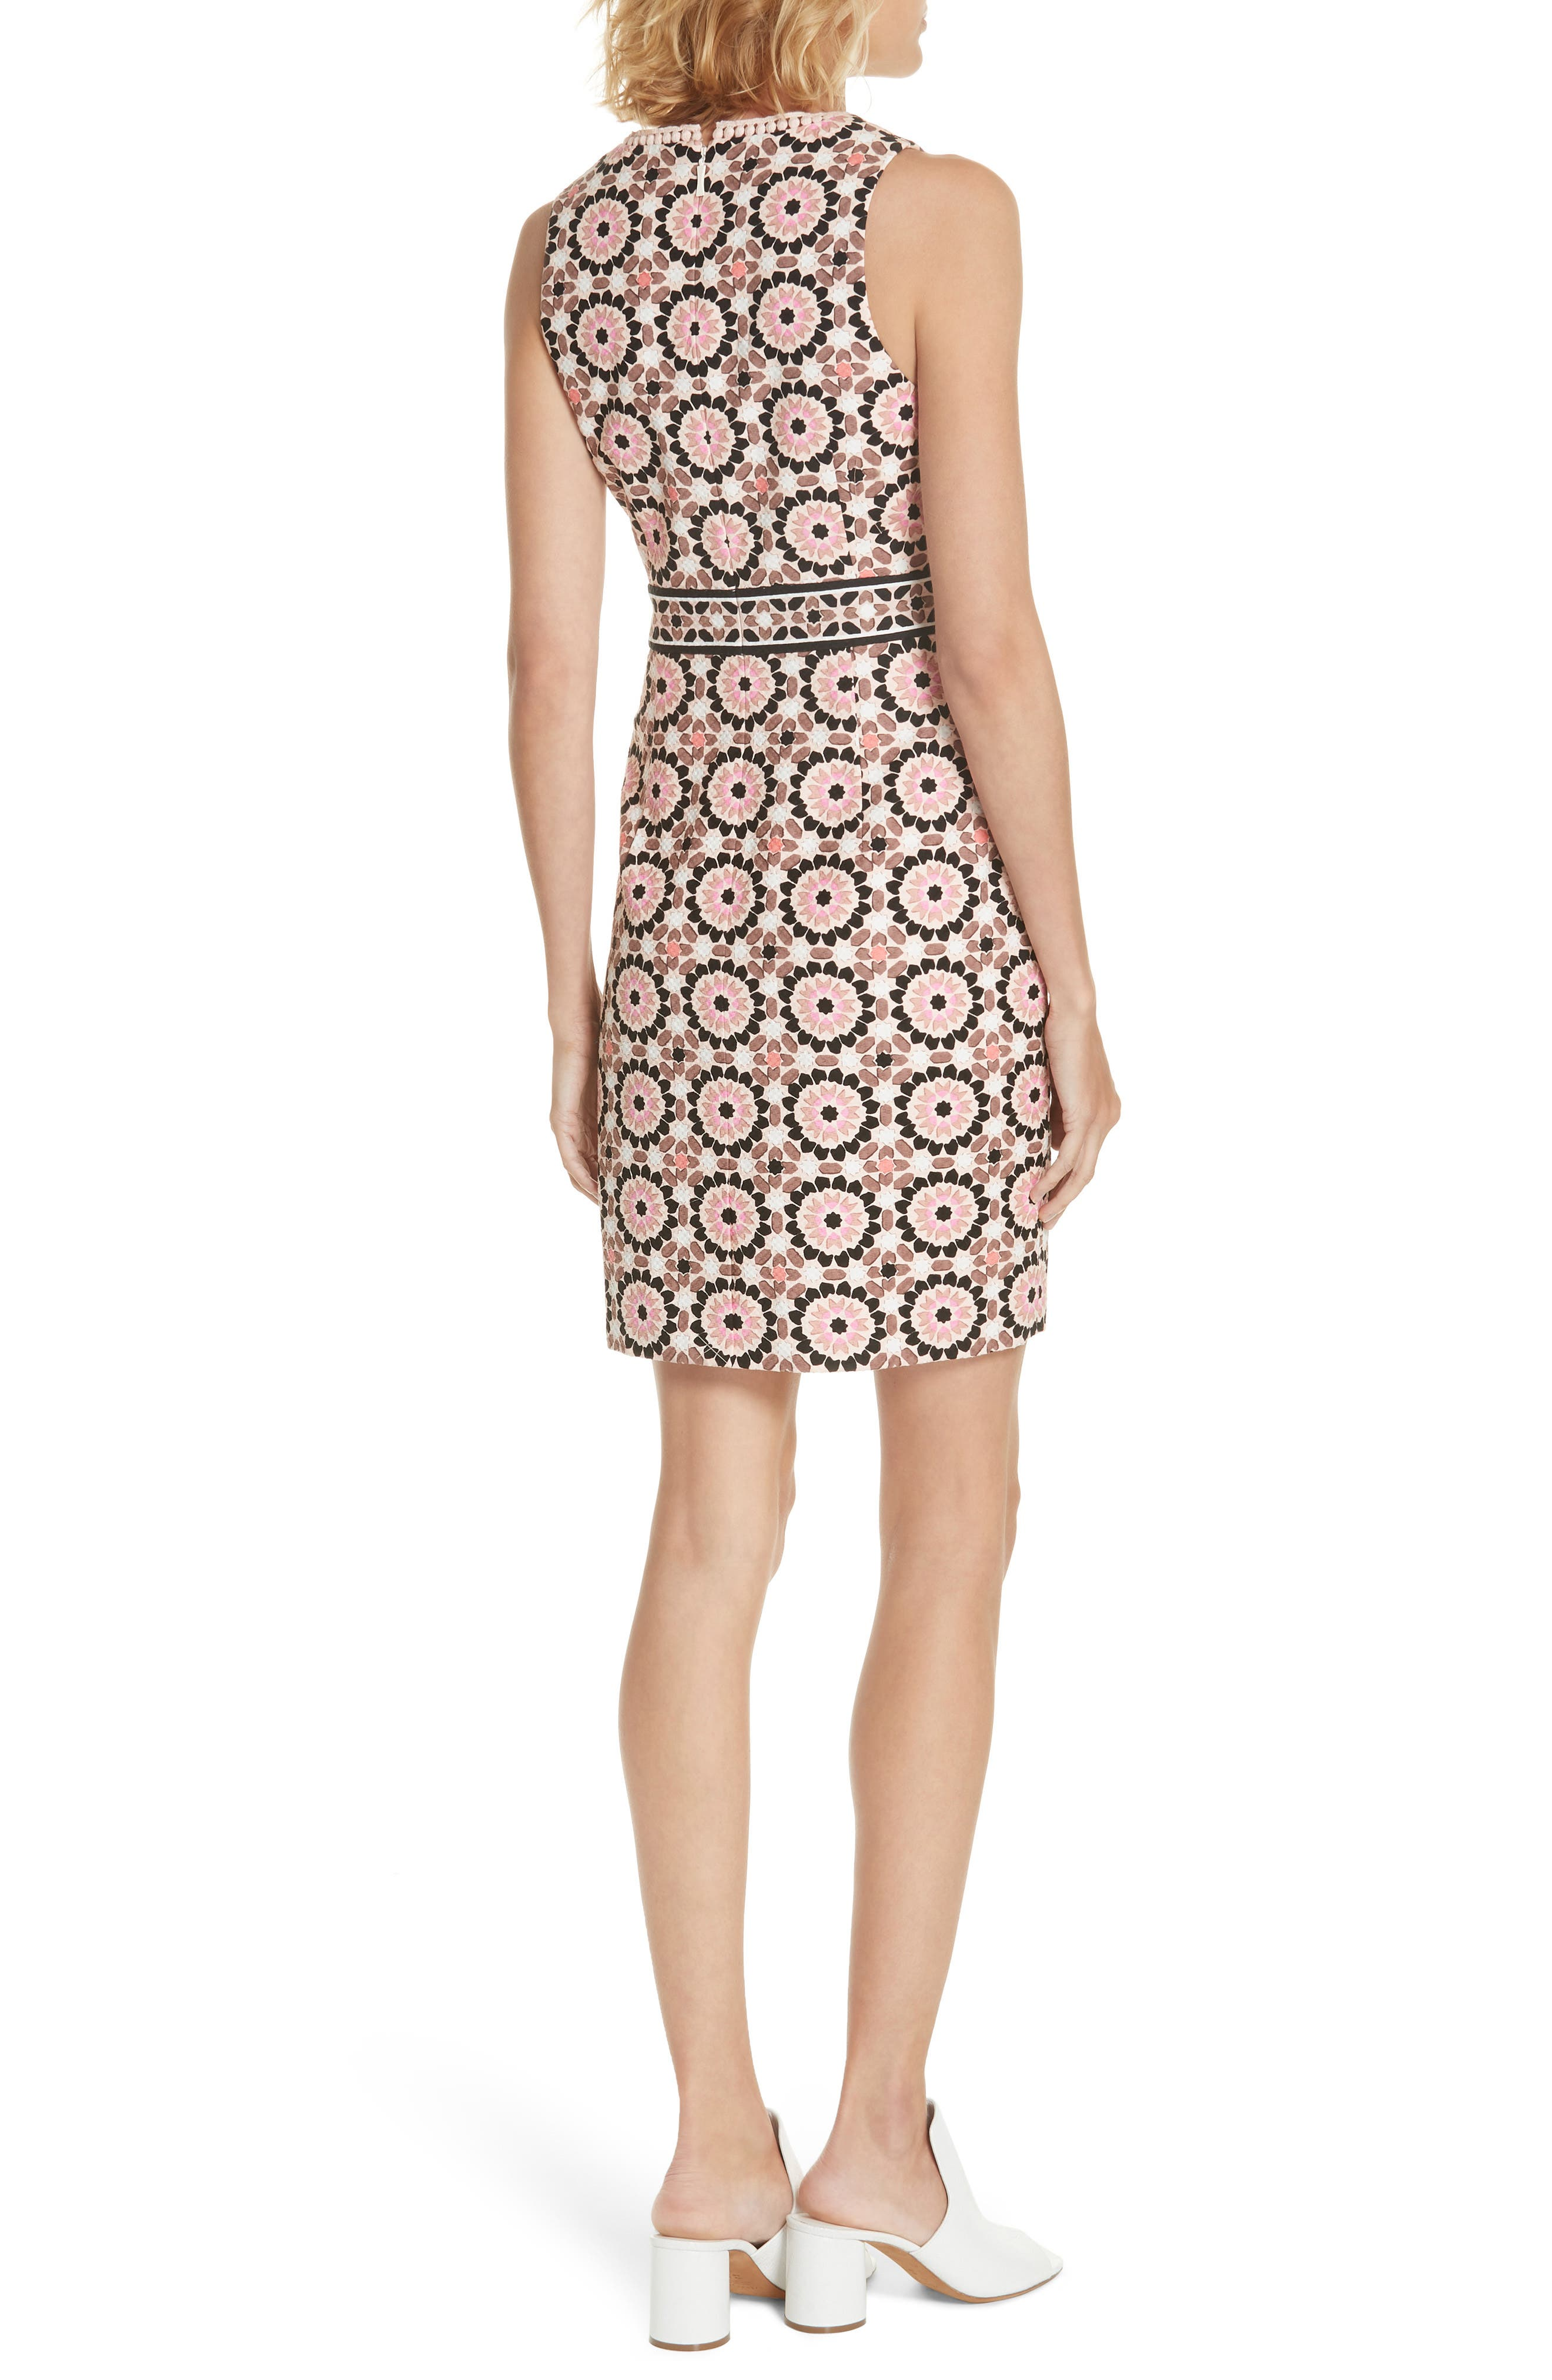 floral mosaic jacquard sheath dress,                             Alternate thumbnail 2, color,                             Pearl Pink Multi